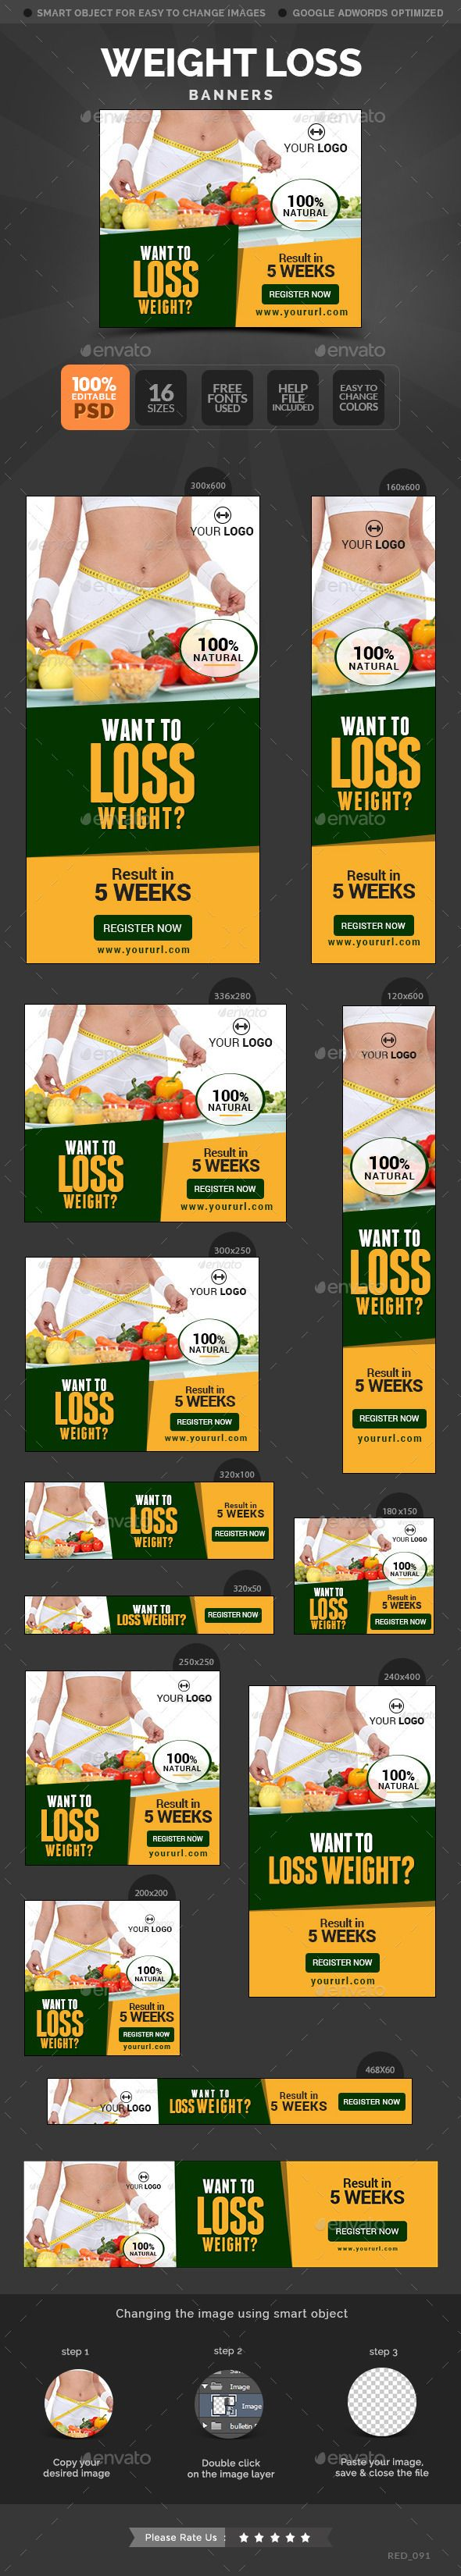 How fast will you lose weight if you cut out sugar image 10